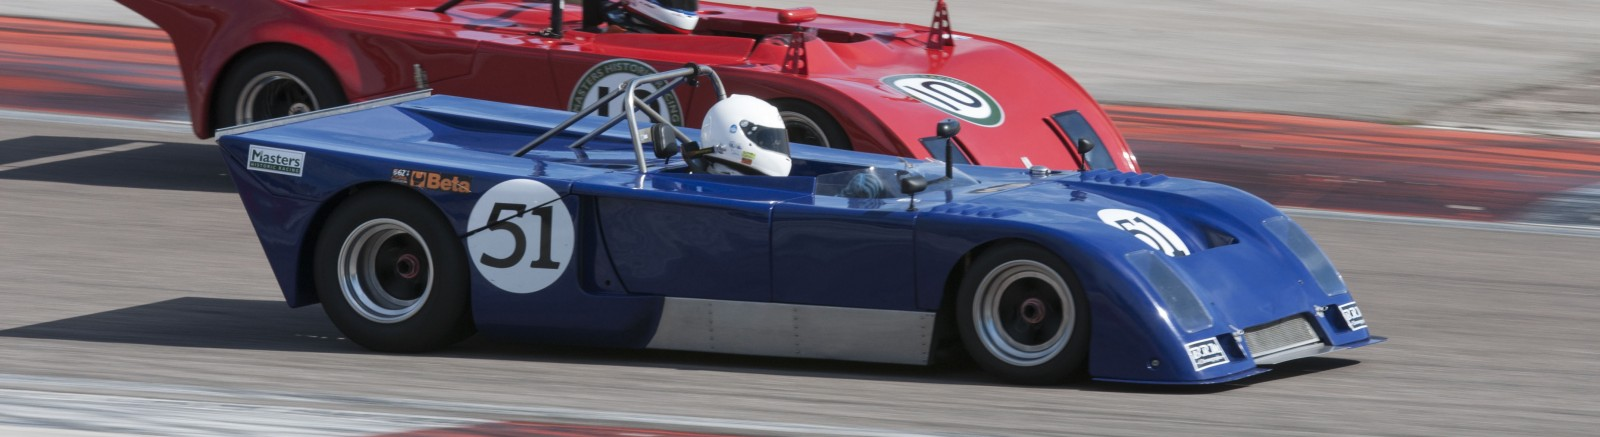 fia_masters_historic_sports_car